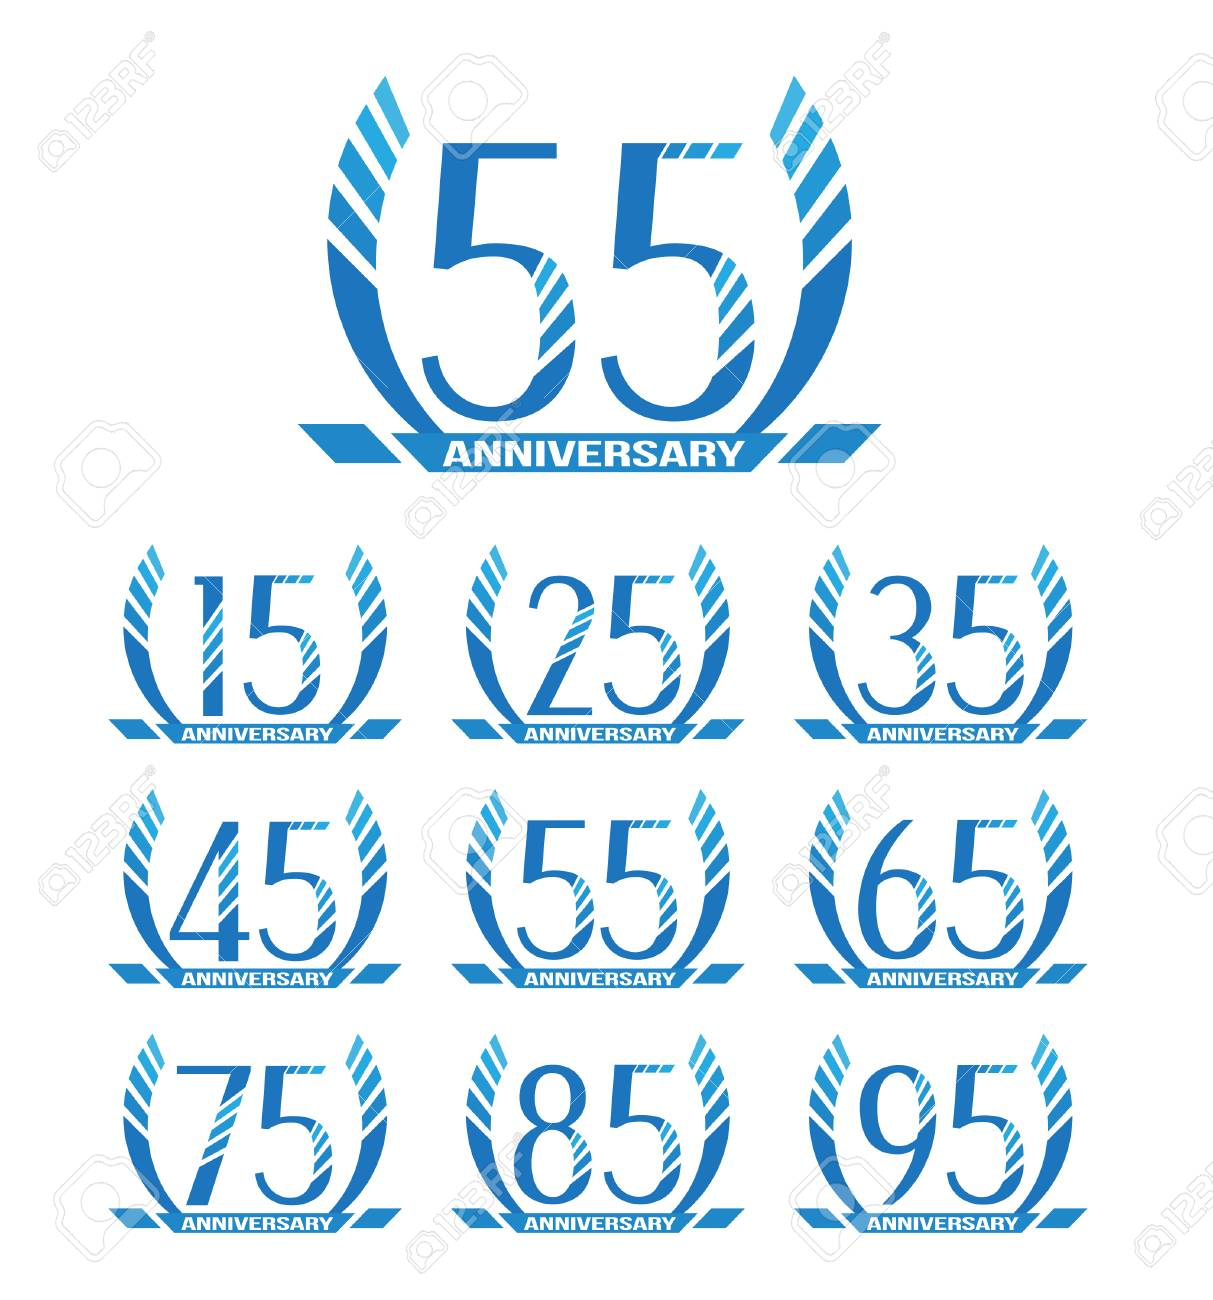 Anniversary emblems in abstract style. 15th, 25th, 35th, 45th, 55th, 65th, 75th, 85th, 95th anniversary sign collection. - 62600268